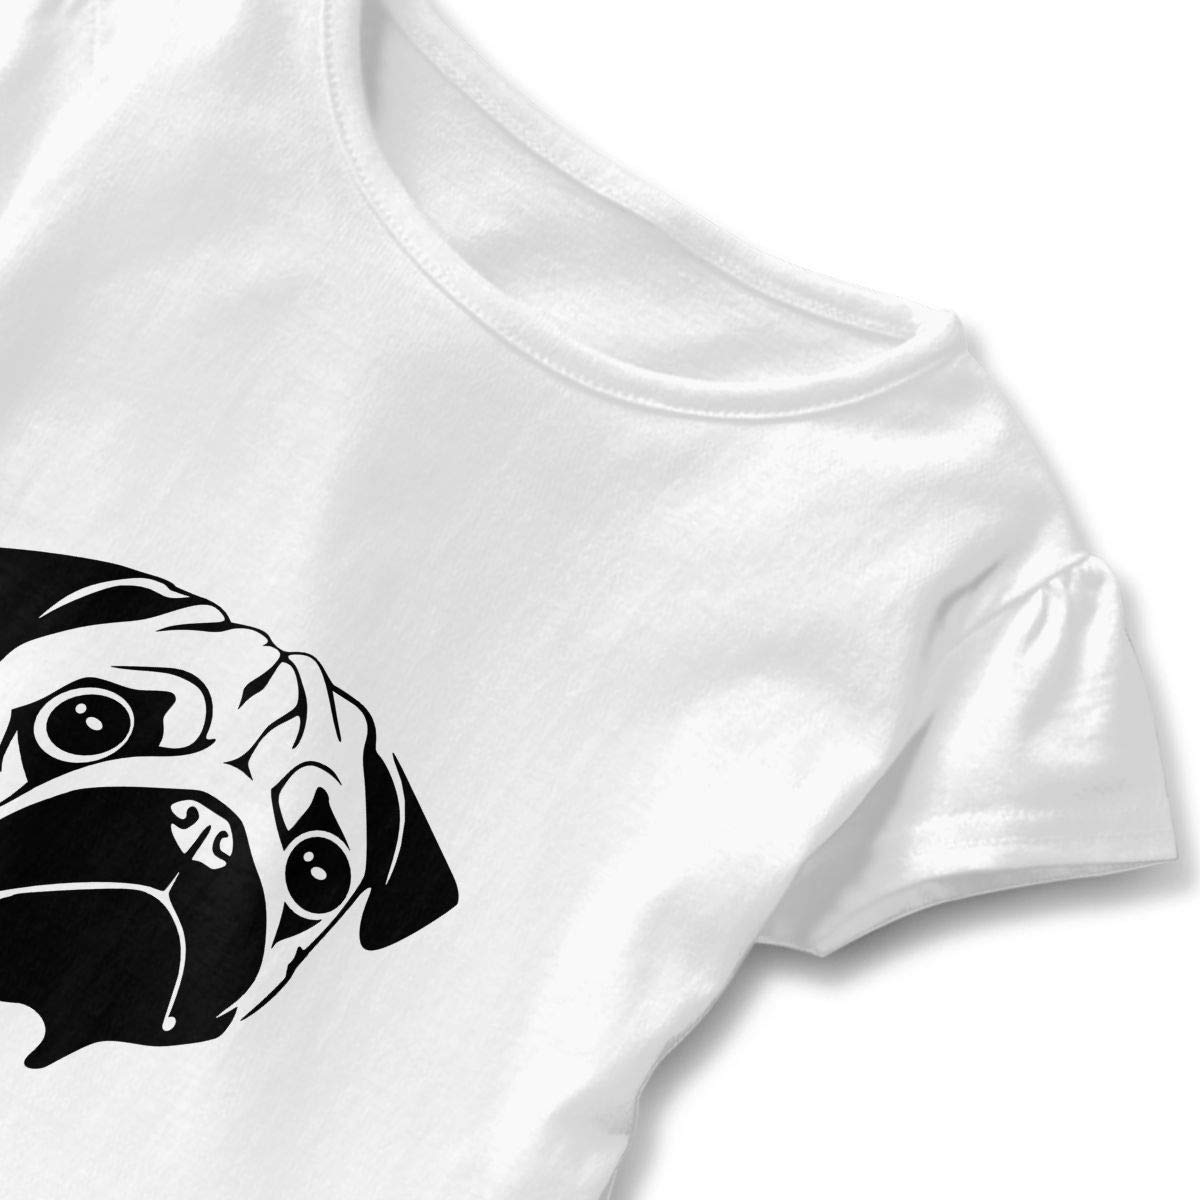 QUZtww Pug Face Raglan Cute Ruffle Tee Shirts Short Sleeves for Daily Party School Outside Playing